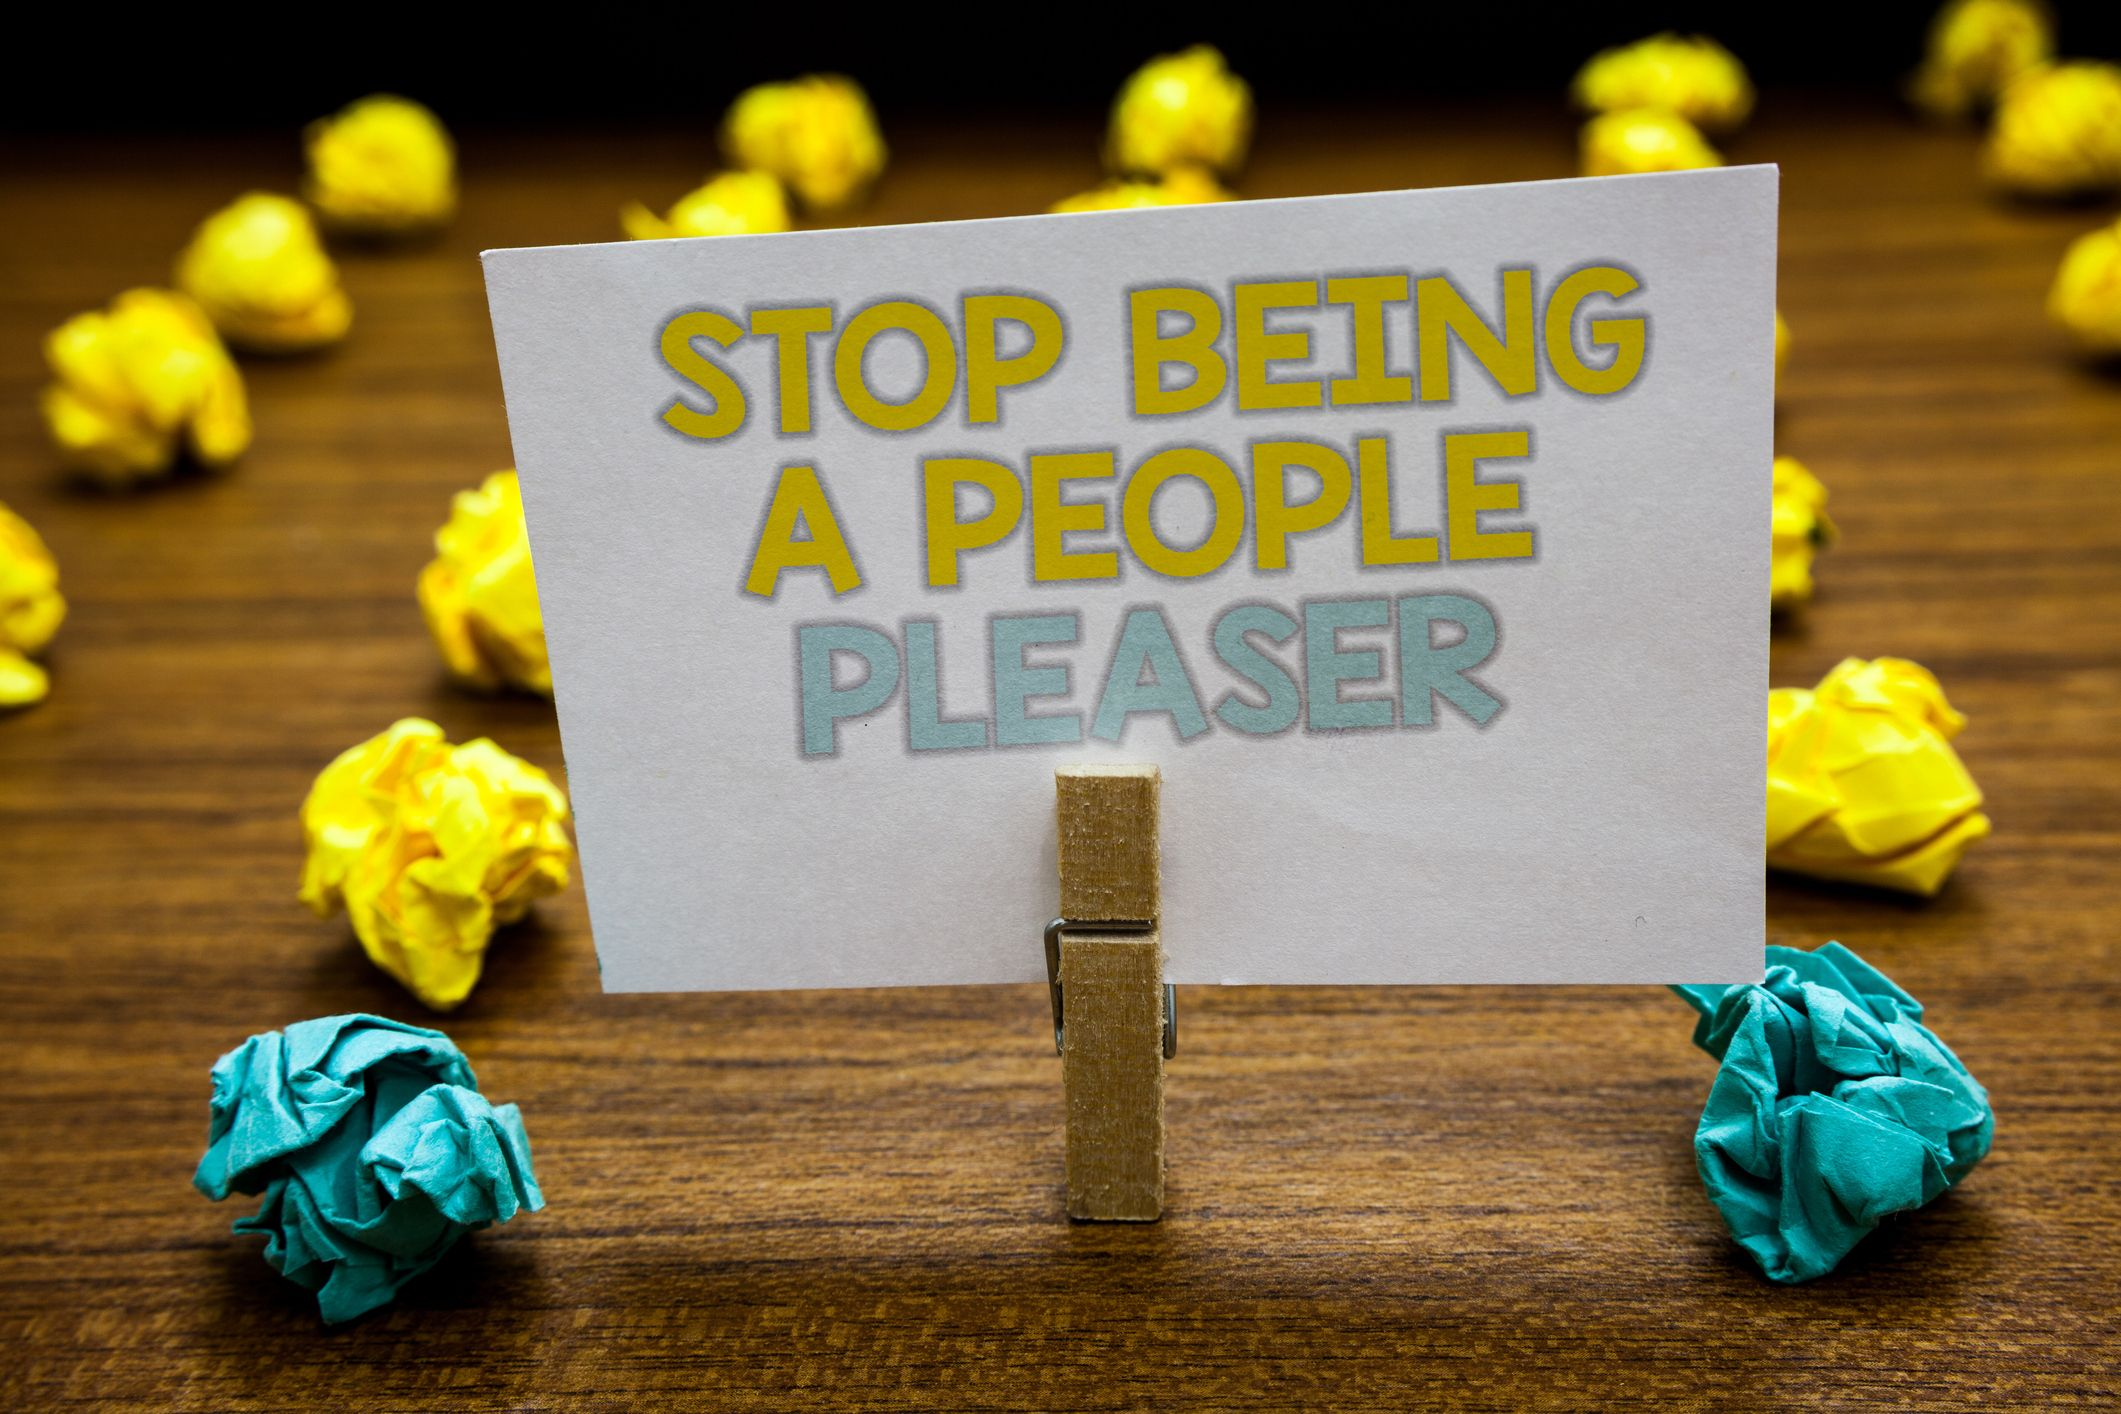 Why You Should Stop Being a People Pleaser